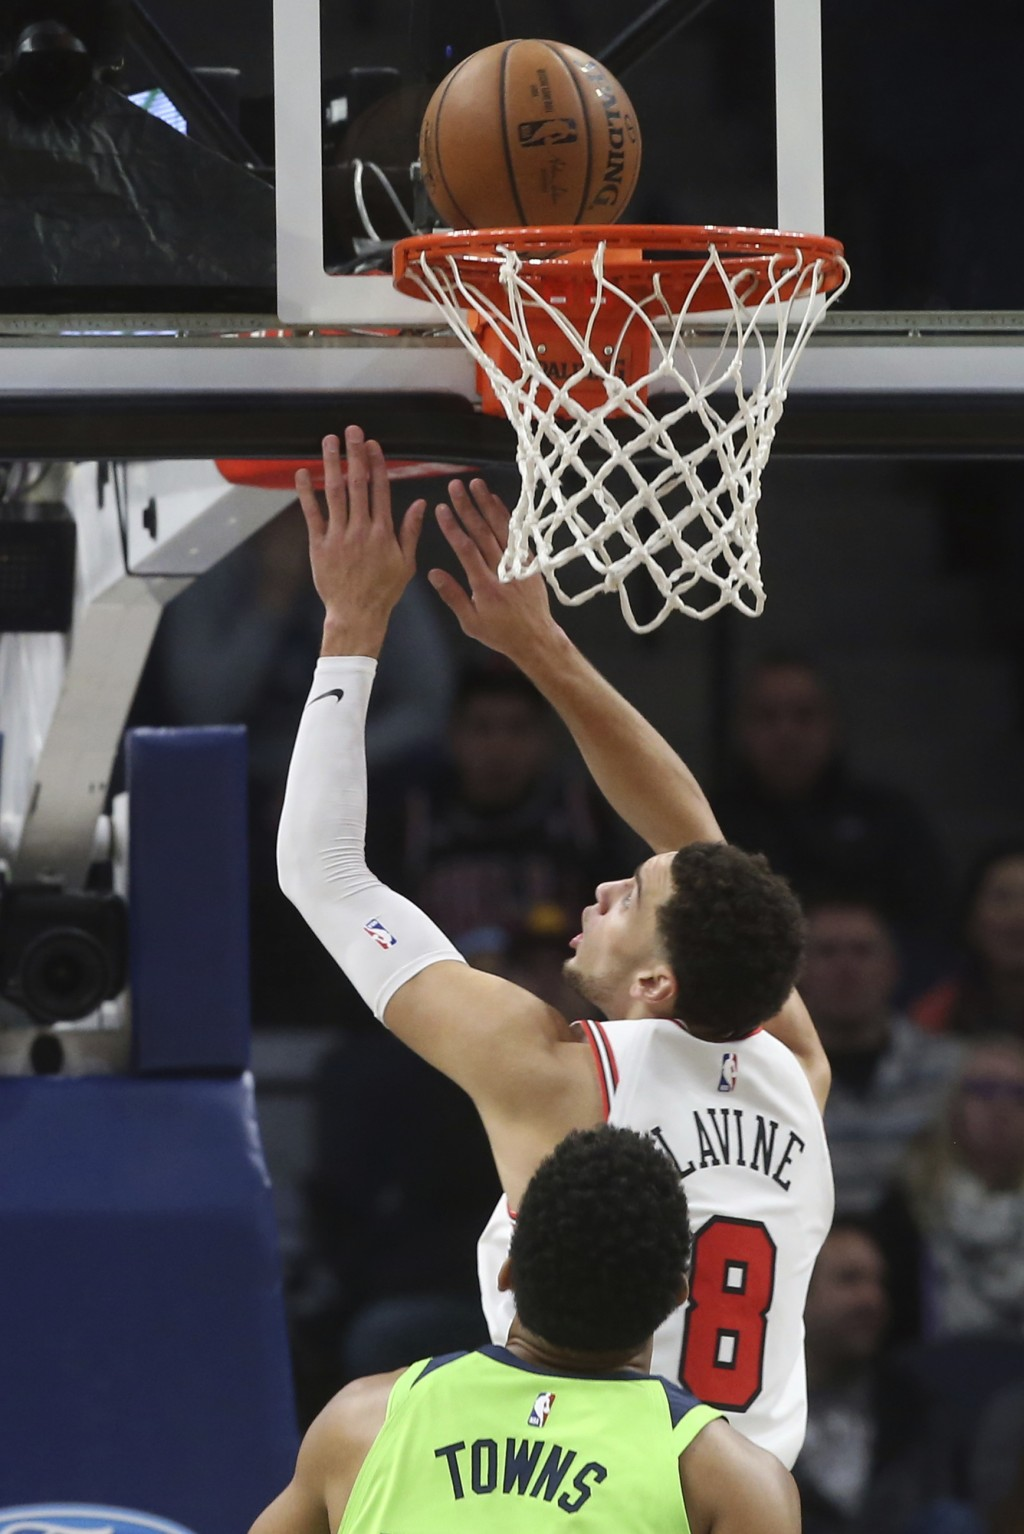 Chicago Bulls' Zach LaVine makes a layup as Minnesota Timberwolves' Karl-Anthony Towns watches in the first half of an NBA basketball game Saturday, N